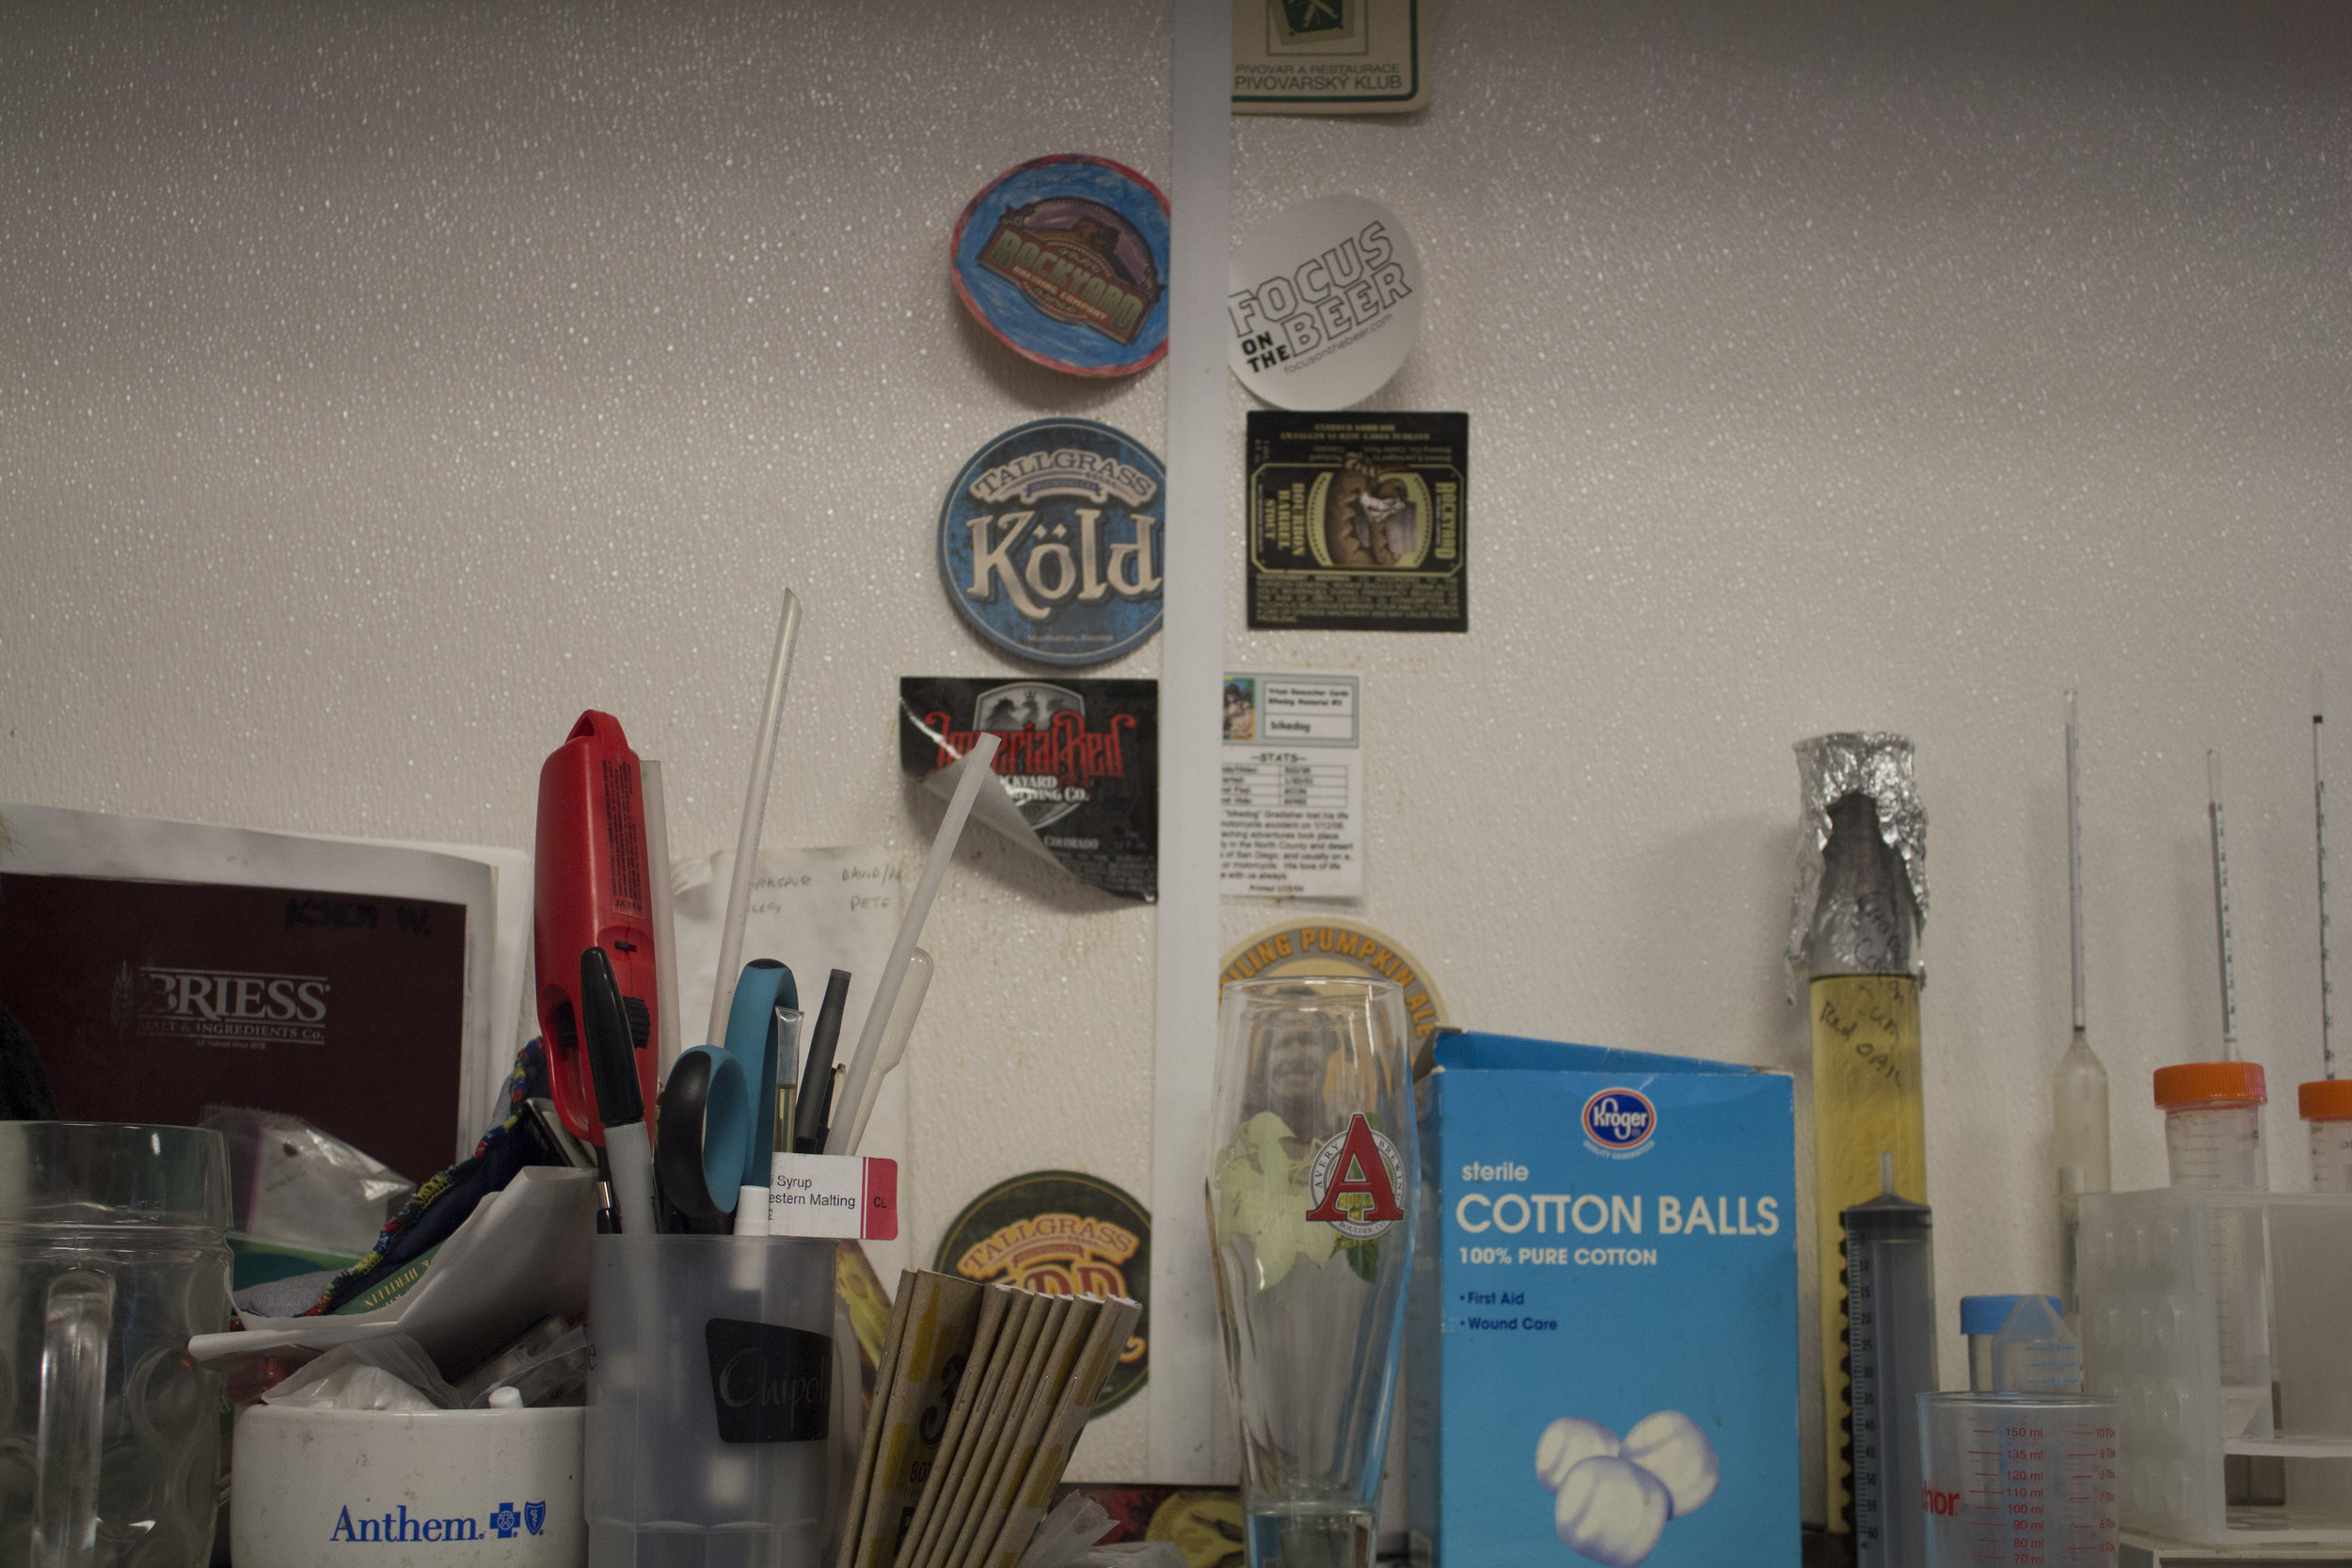 Mid-way through the day, I noticed a familiar white sticker on the wall in the brewhouse...